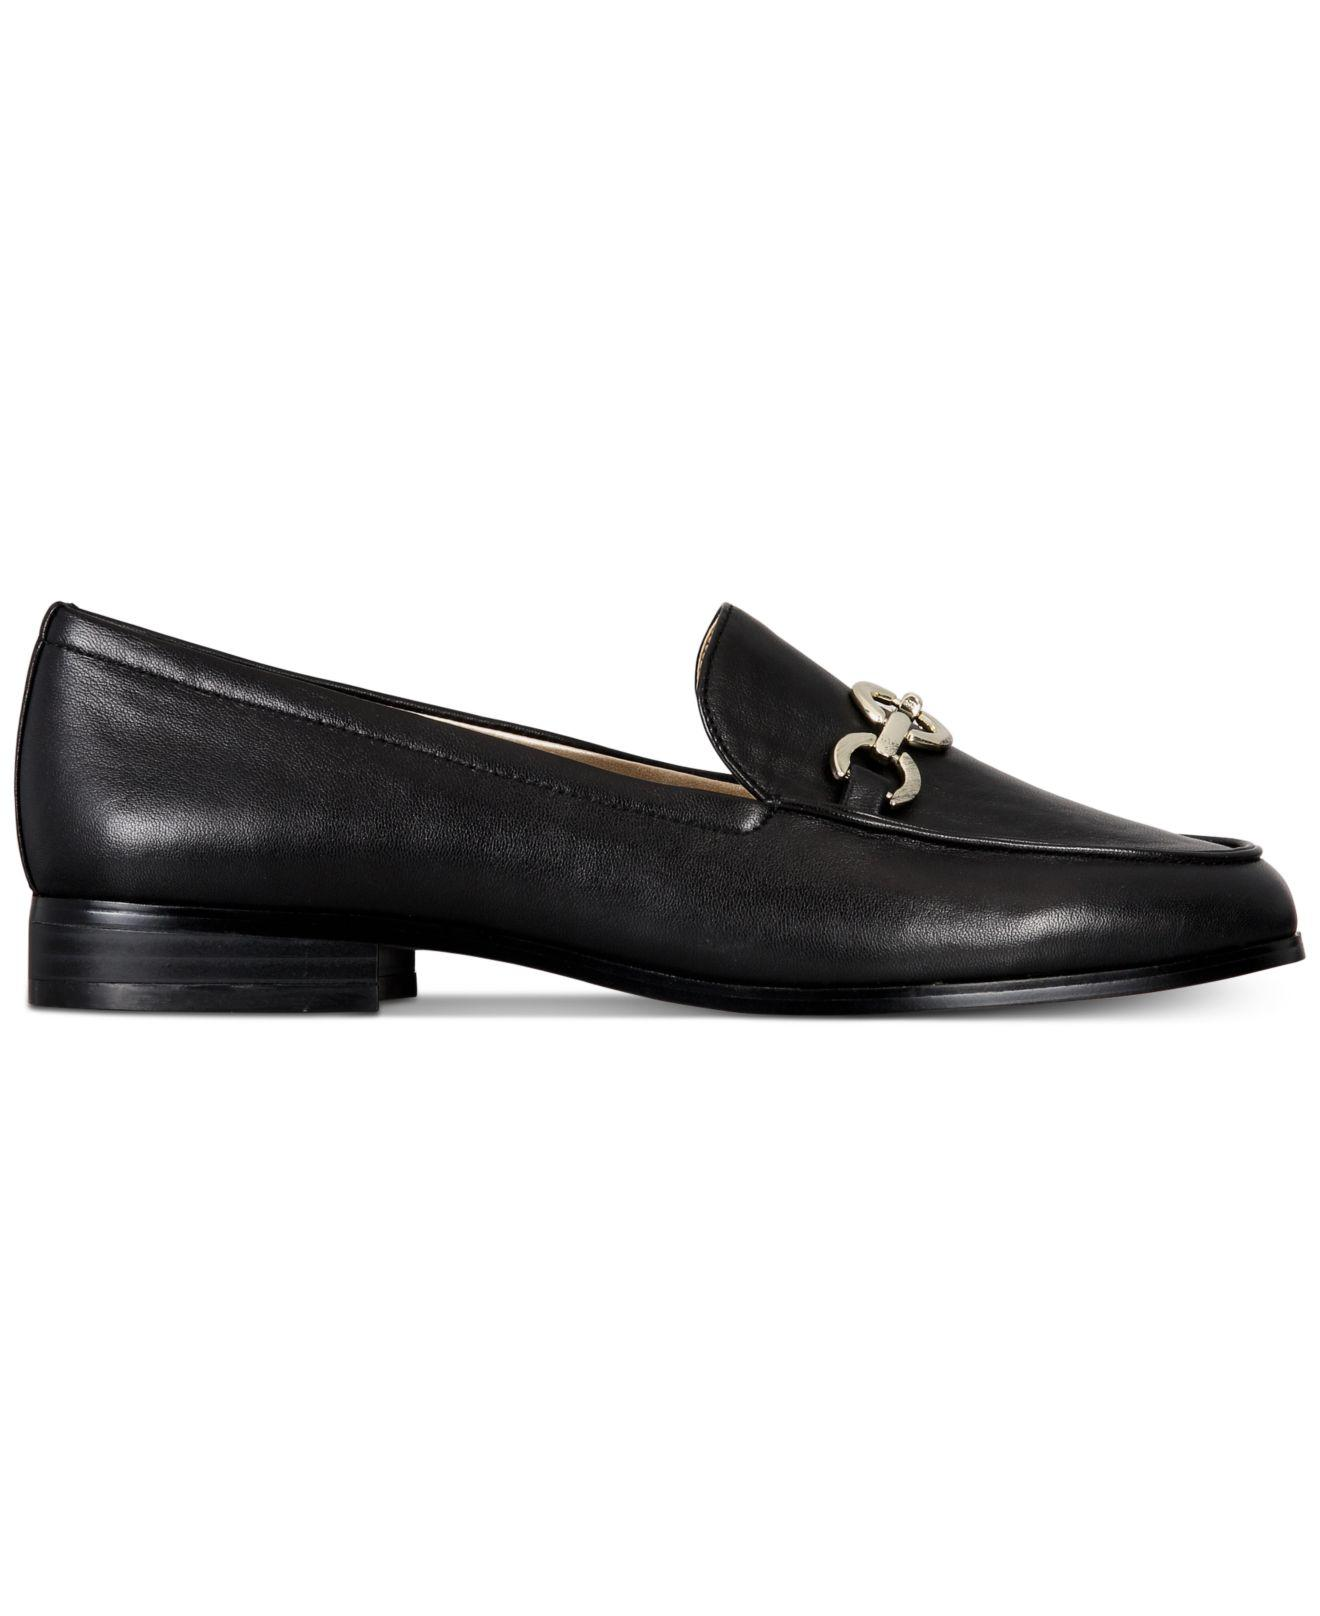 5483795a7ee Lyst - Bandolino Lehain Slip-on Loafers